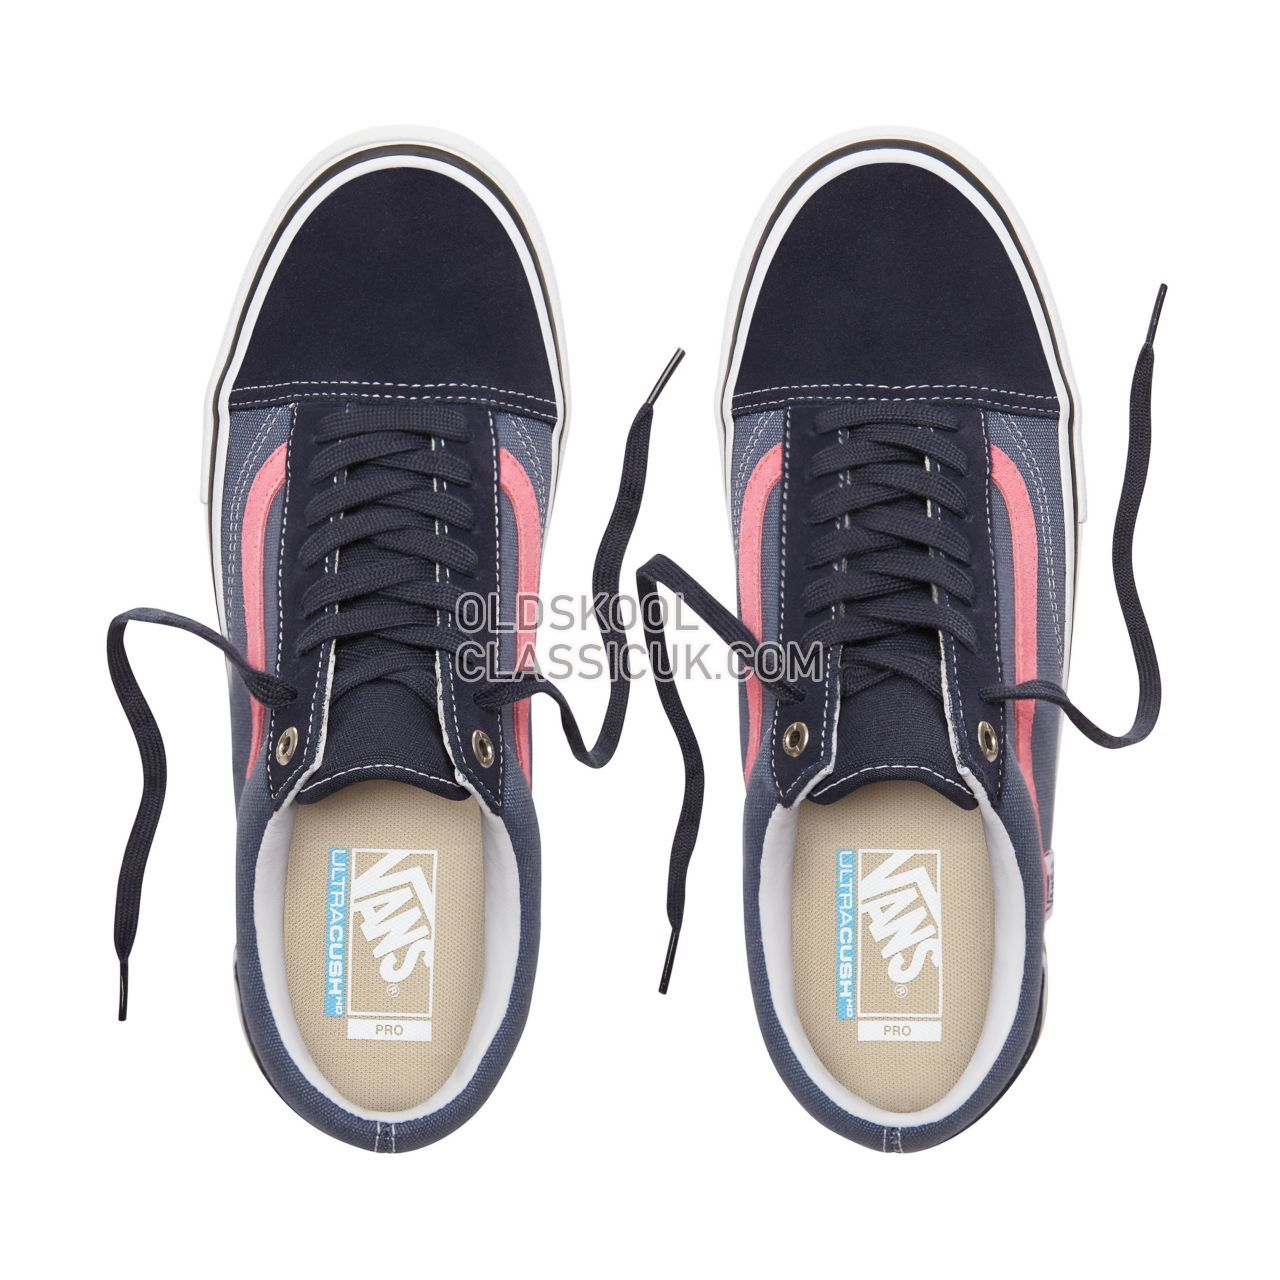 Vans Old Skool Pro Sneakers Mens Womens Unisex Sky Captain/Pink VN000ZD4UHR Shoes